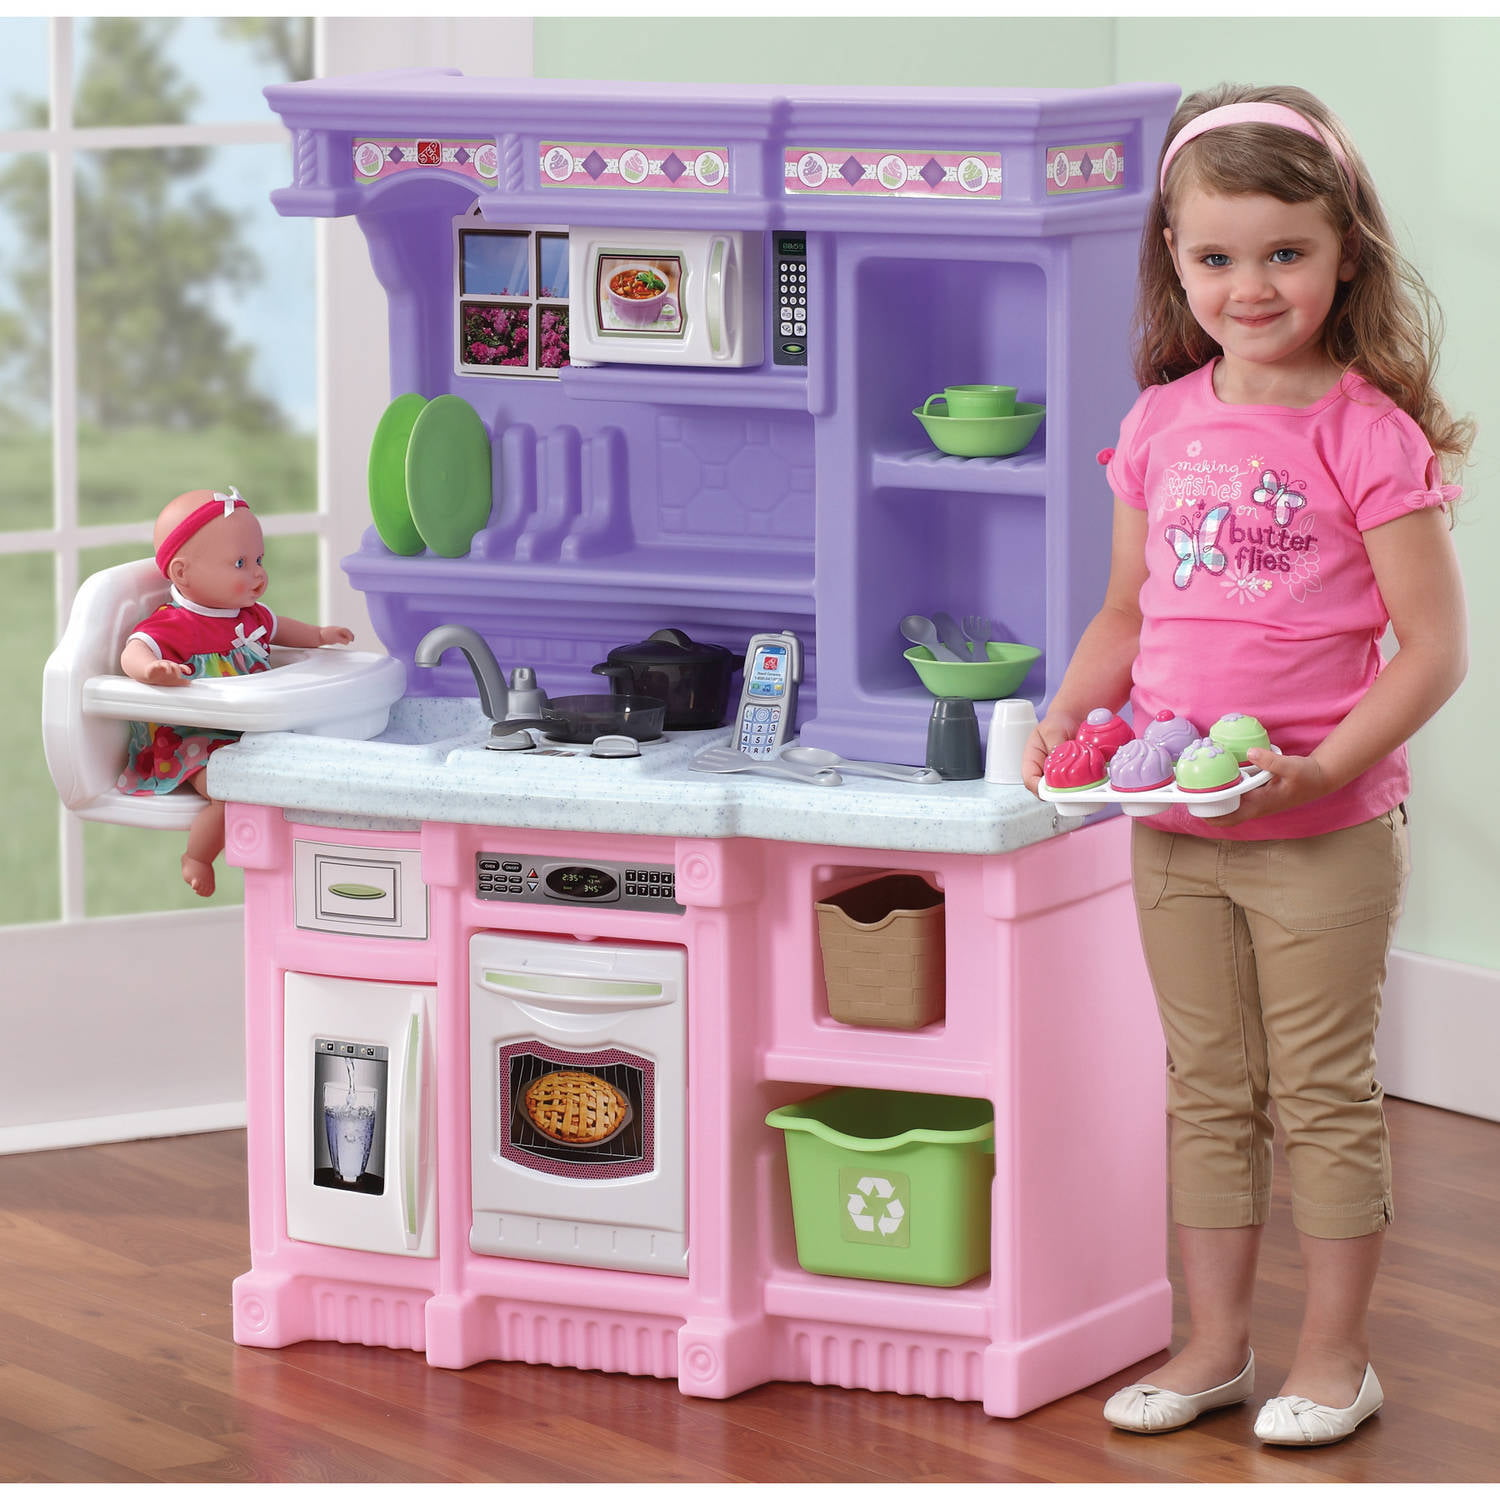 Permalink to 31 new images of Walmart Kids Kitchen